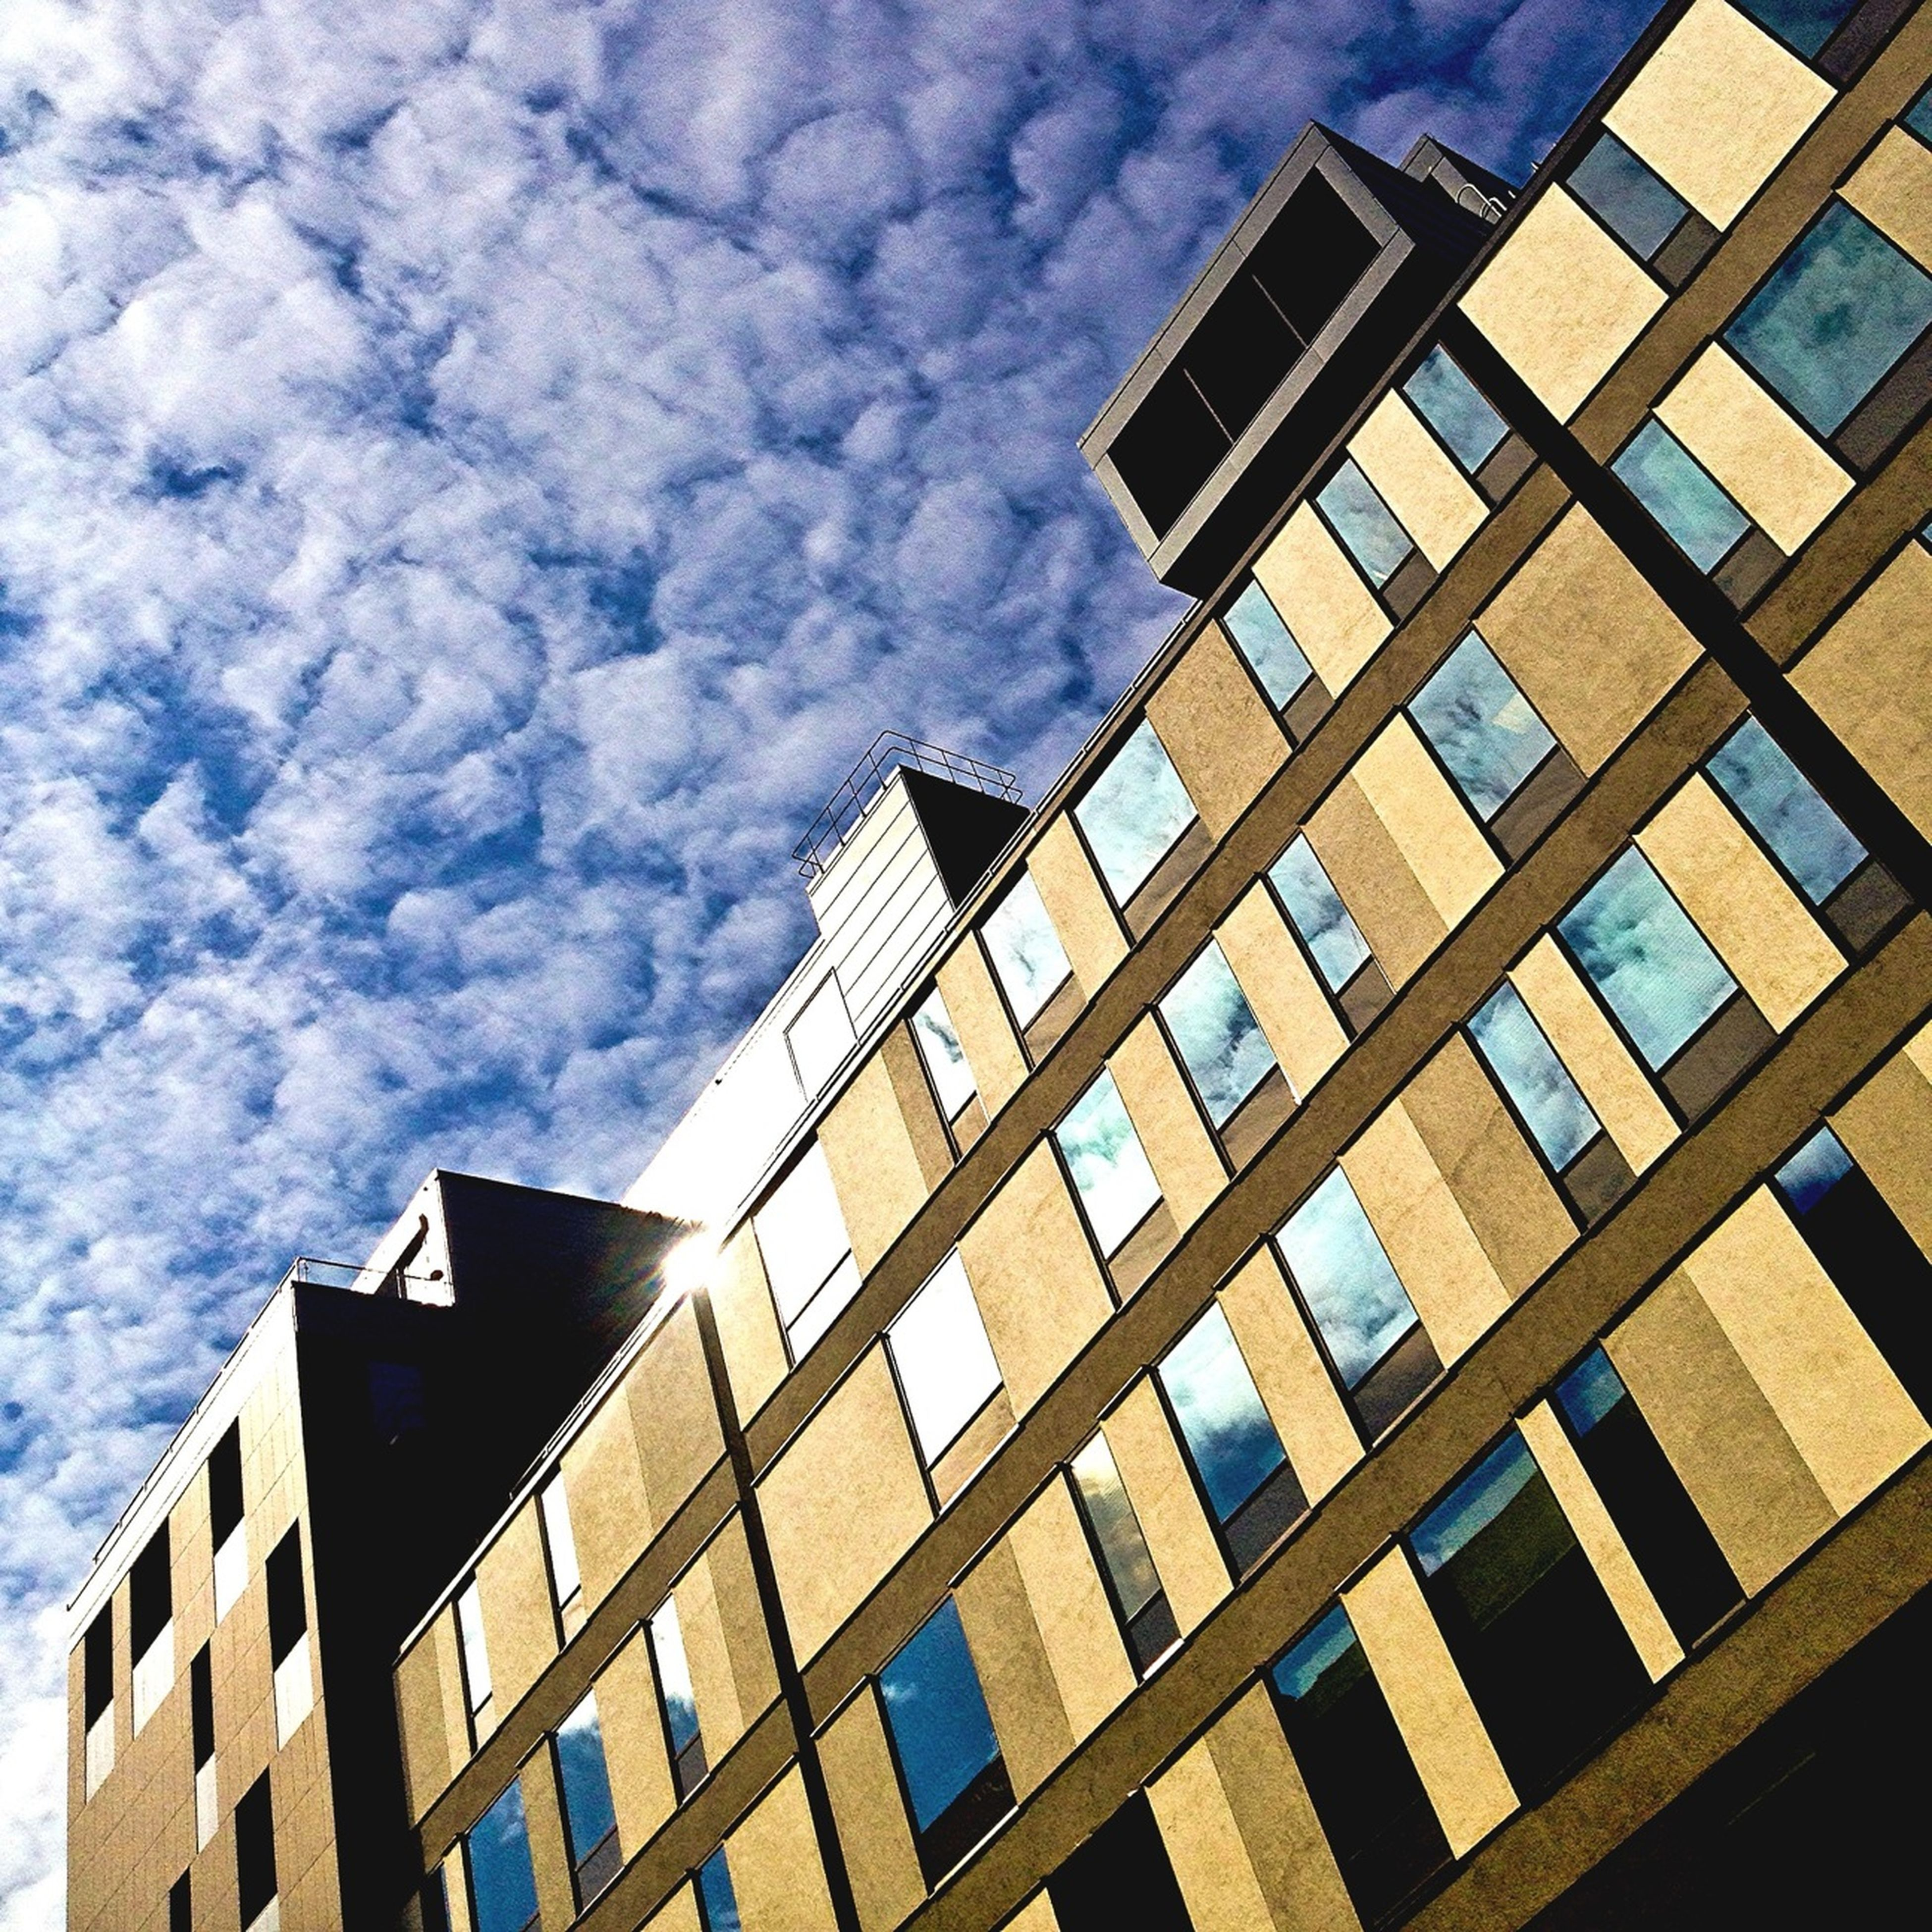 architecture, building exterior, built structure, low angle view, sky, city, window, building, modern, cloud - sky, office building, cloudy, skyscraper, glass - material, reflection, residential building, day, tall - high, cloud, outdoors